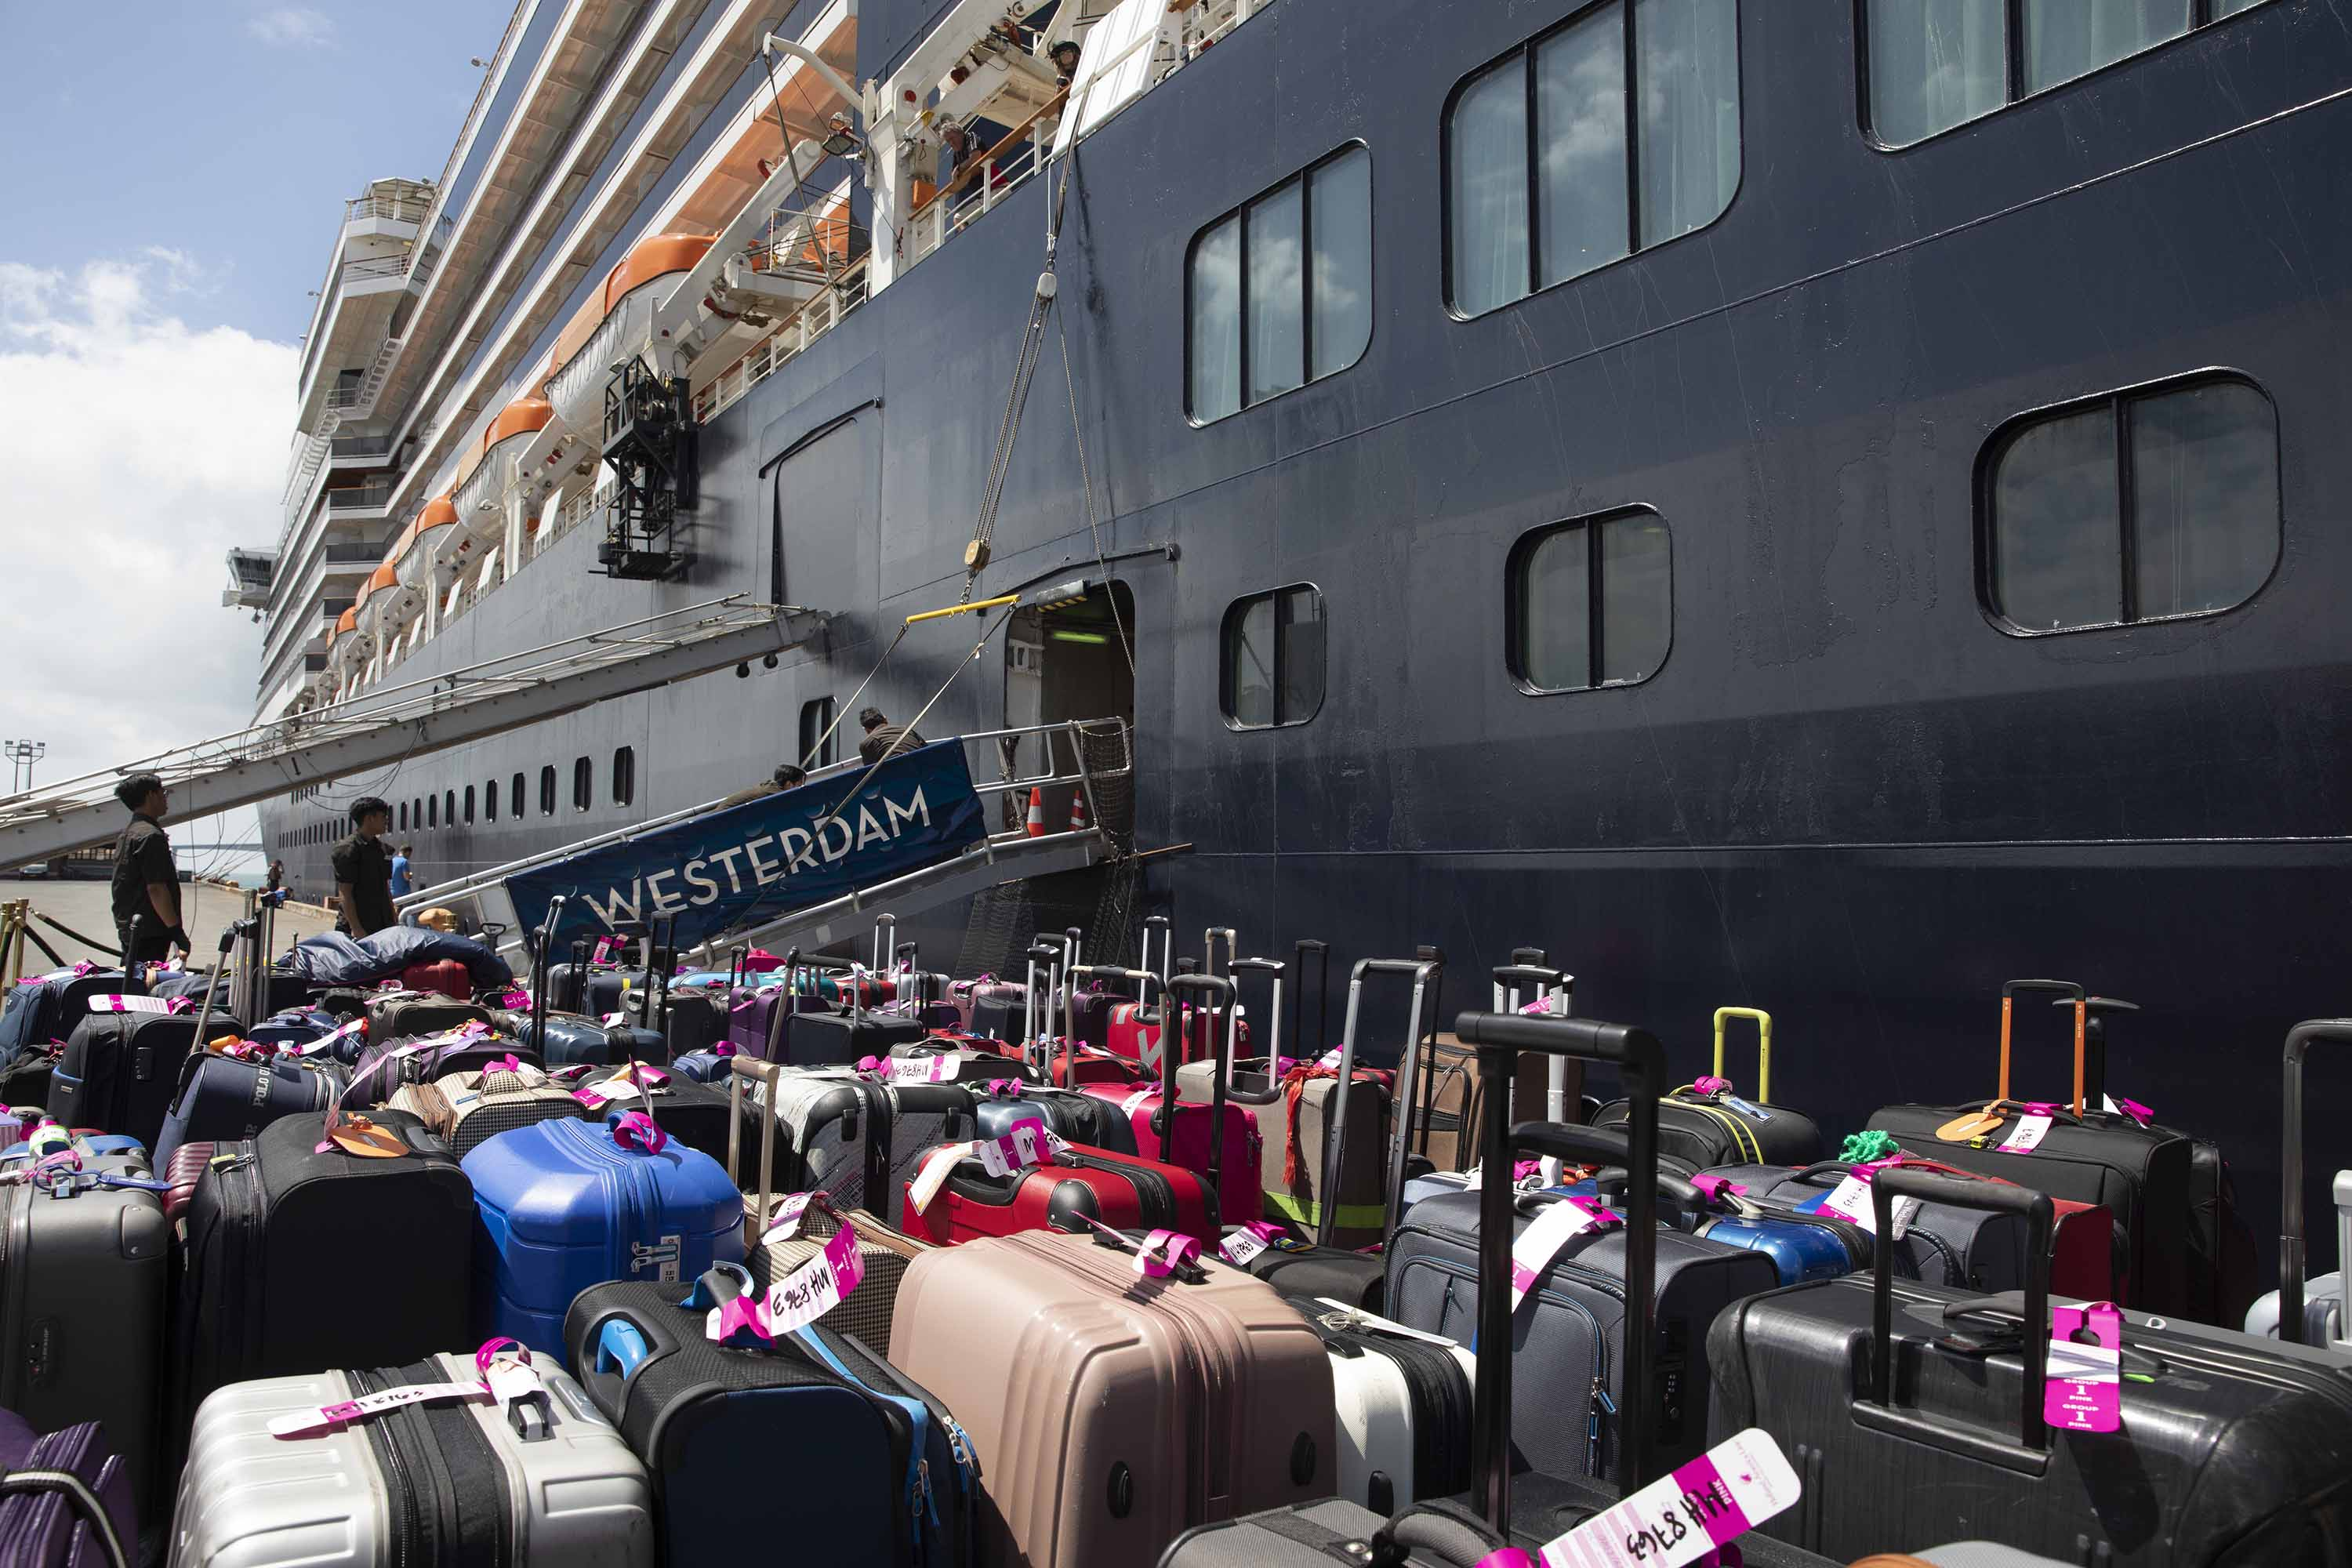 Luggage is prepared as some passengers disembark the MS Westerdam cruise ship docked in Sihanoukville, Cambodia on February 14.